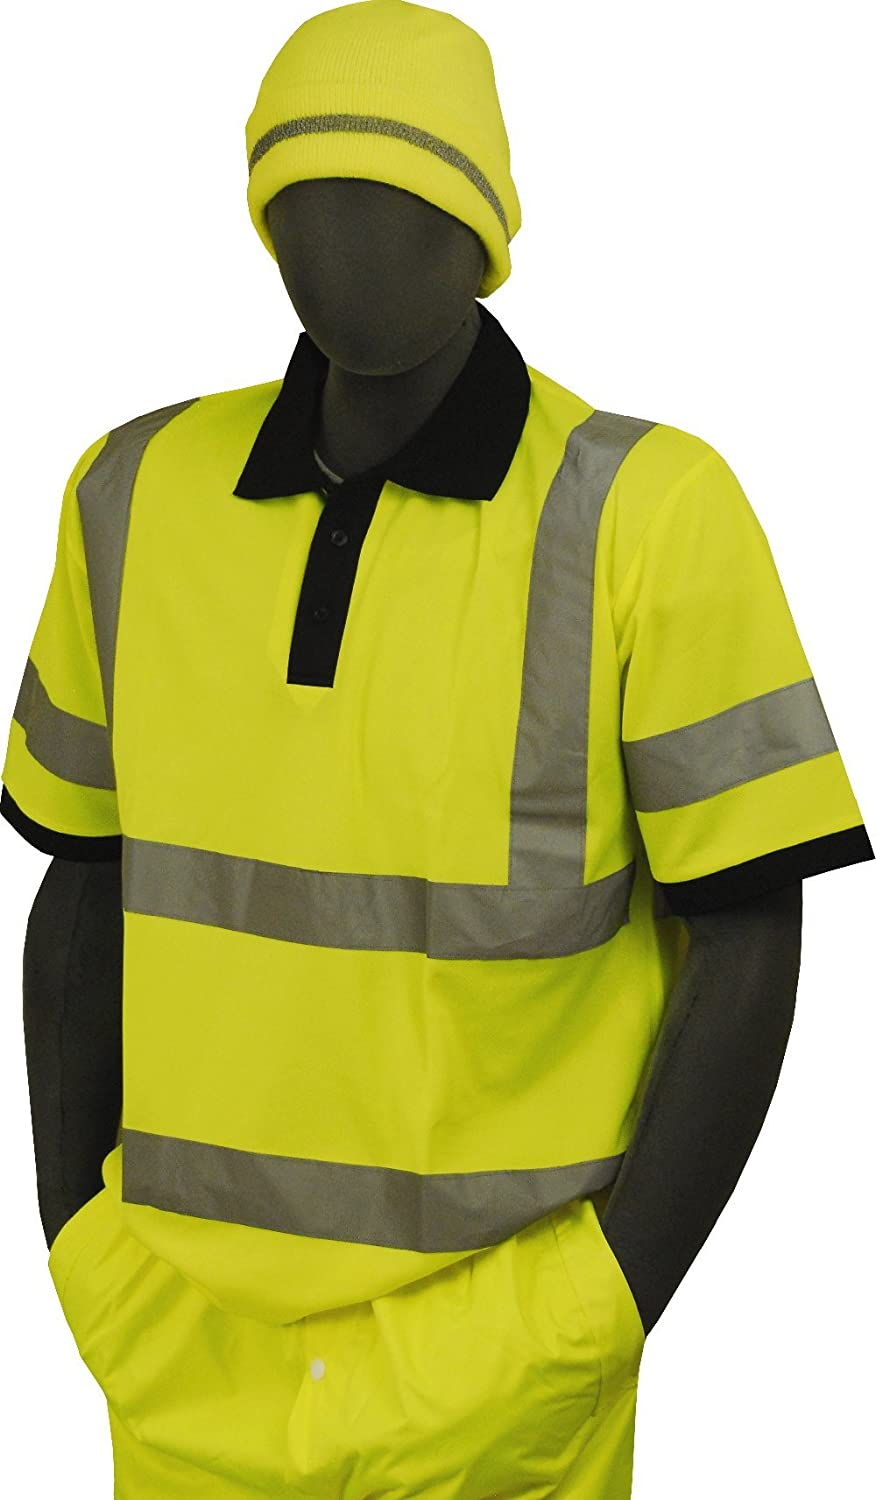 Majestic Glove 75-5311 Birdseye Polyester High Visibility Polo T-Shirt with 2 Reflective Tape 6X-Large Yellow 75-5311-X6